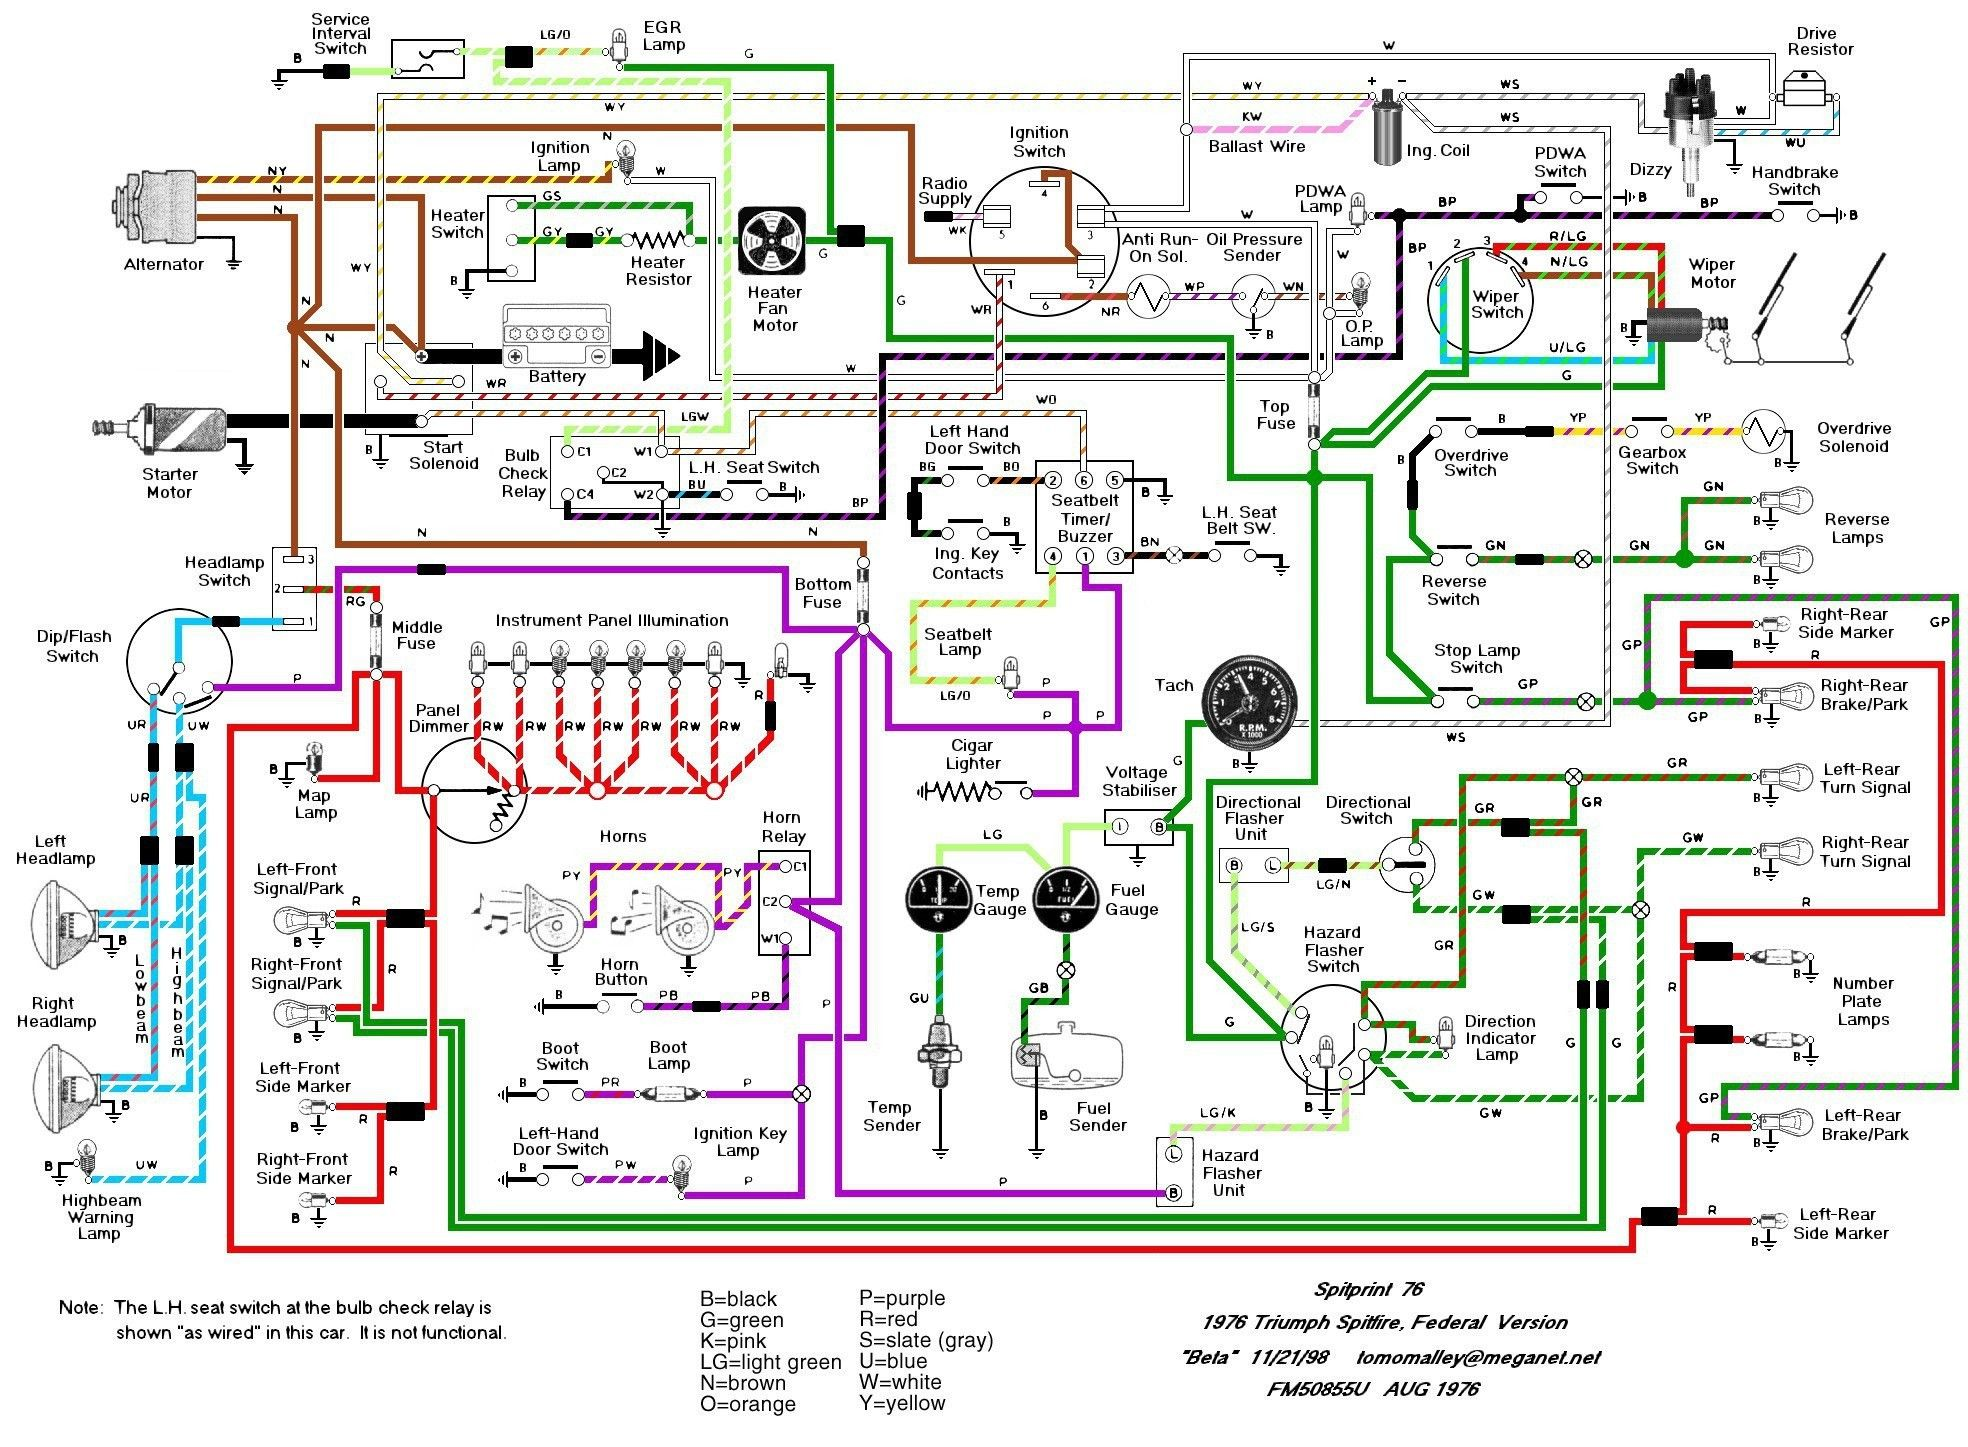 House Wiring Diagram Us New Diagram Of Home Wiring Free Wiring Diagram Xwiaw Basic Of House W Electrical Circuit Diagram House Wiring Electrical Wiring Diagram